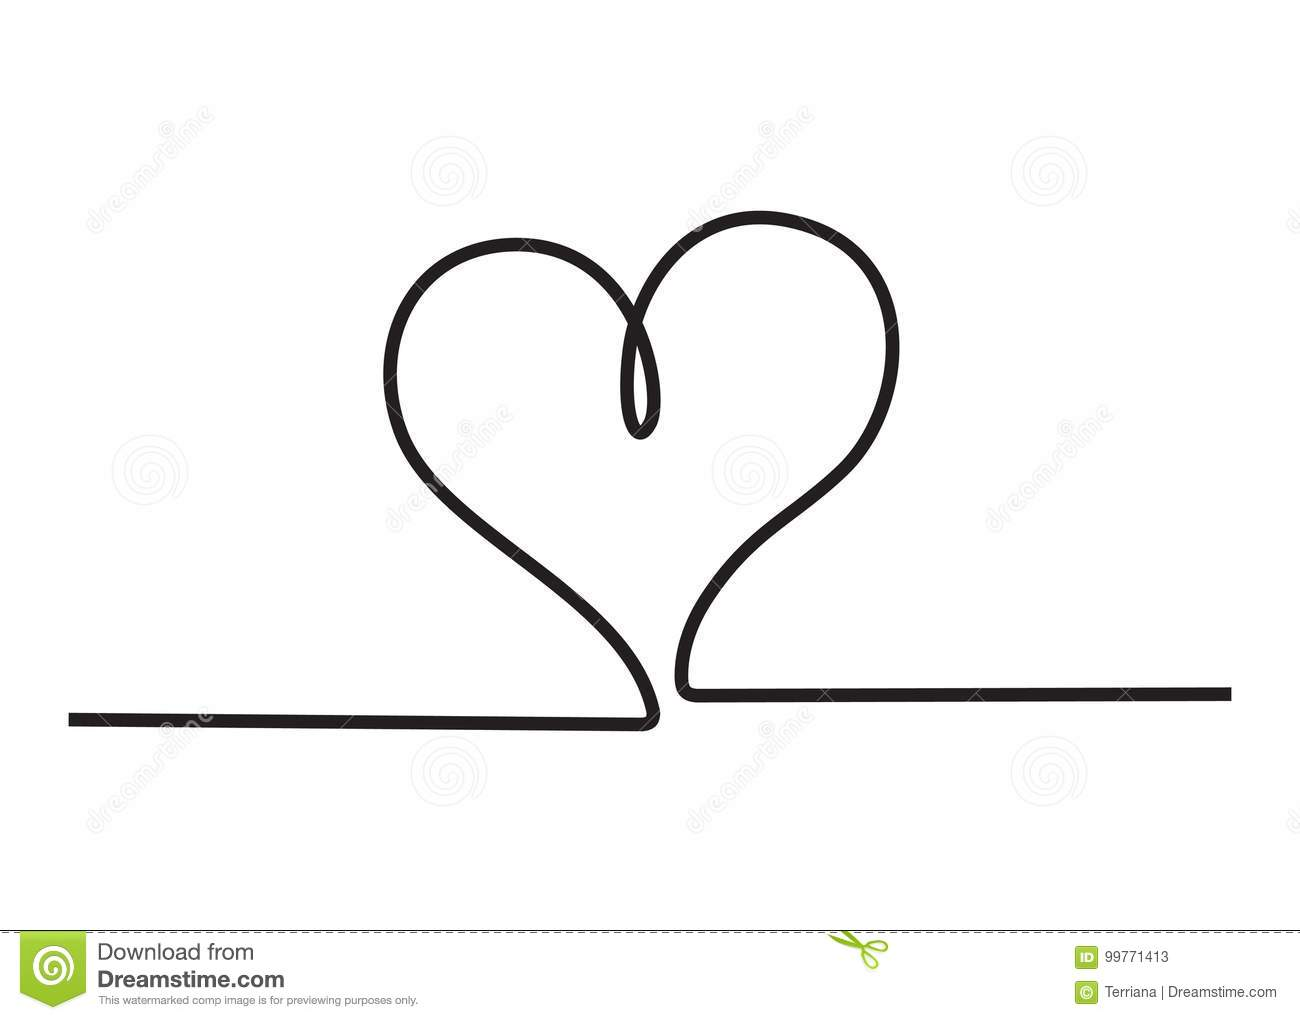 Line Art Love Heart : Heart icon stylish line art sign stock illustration